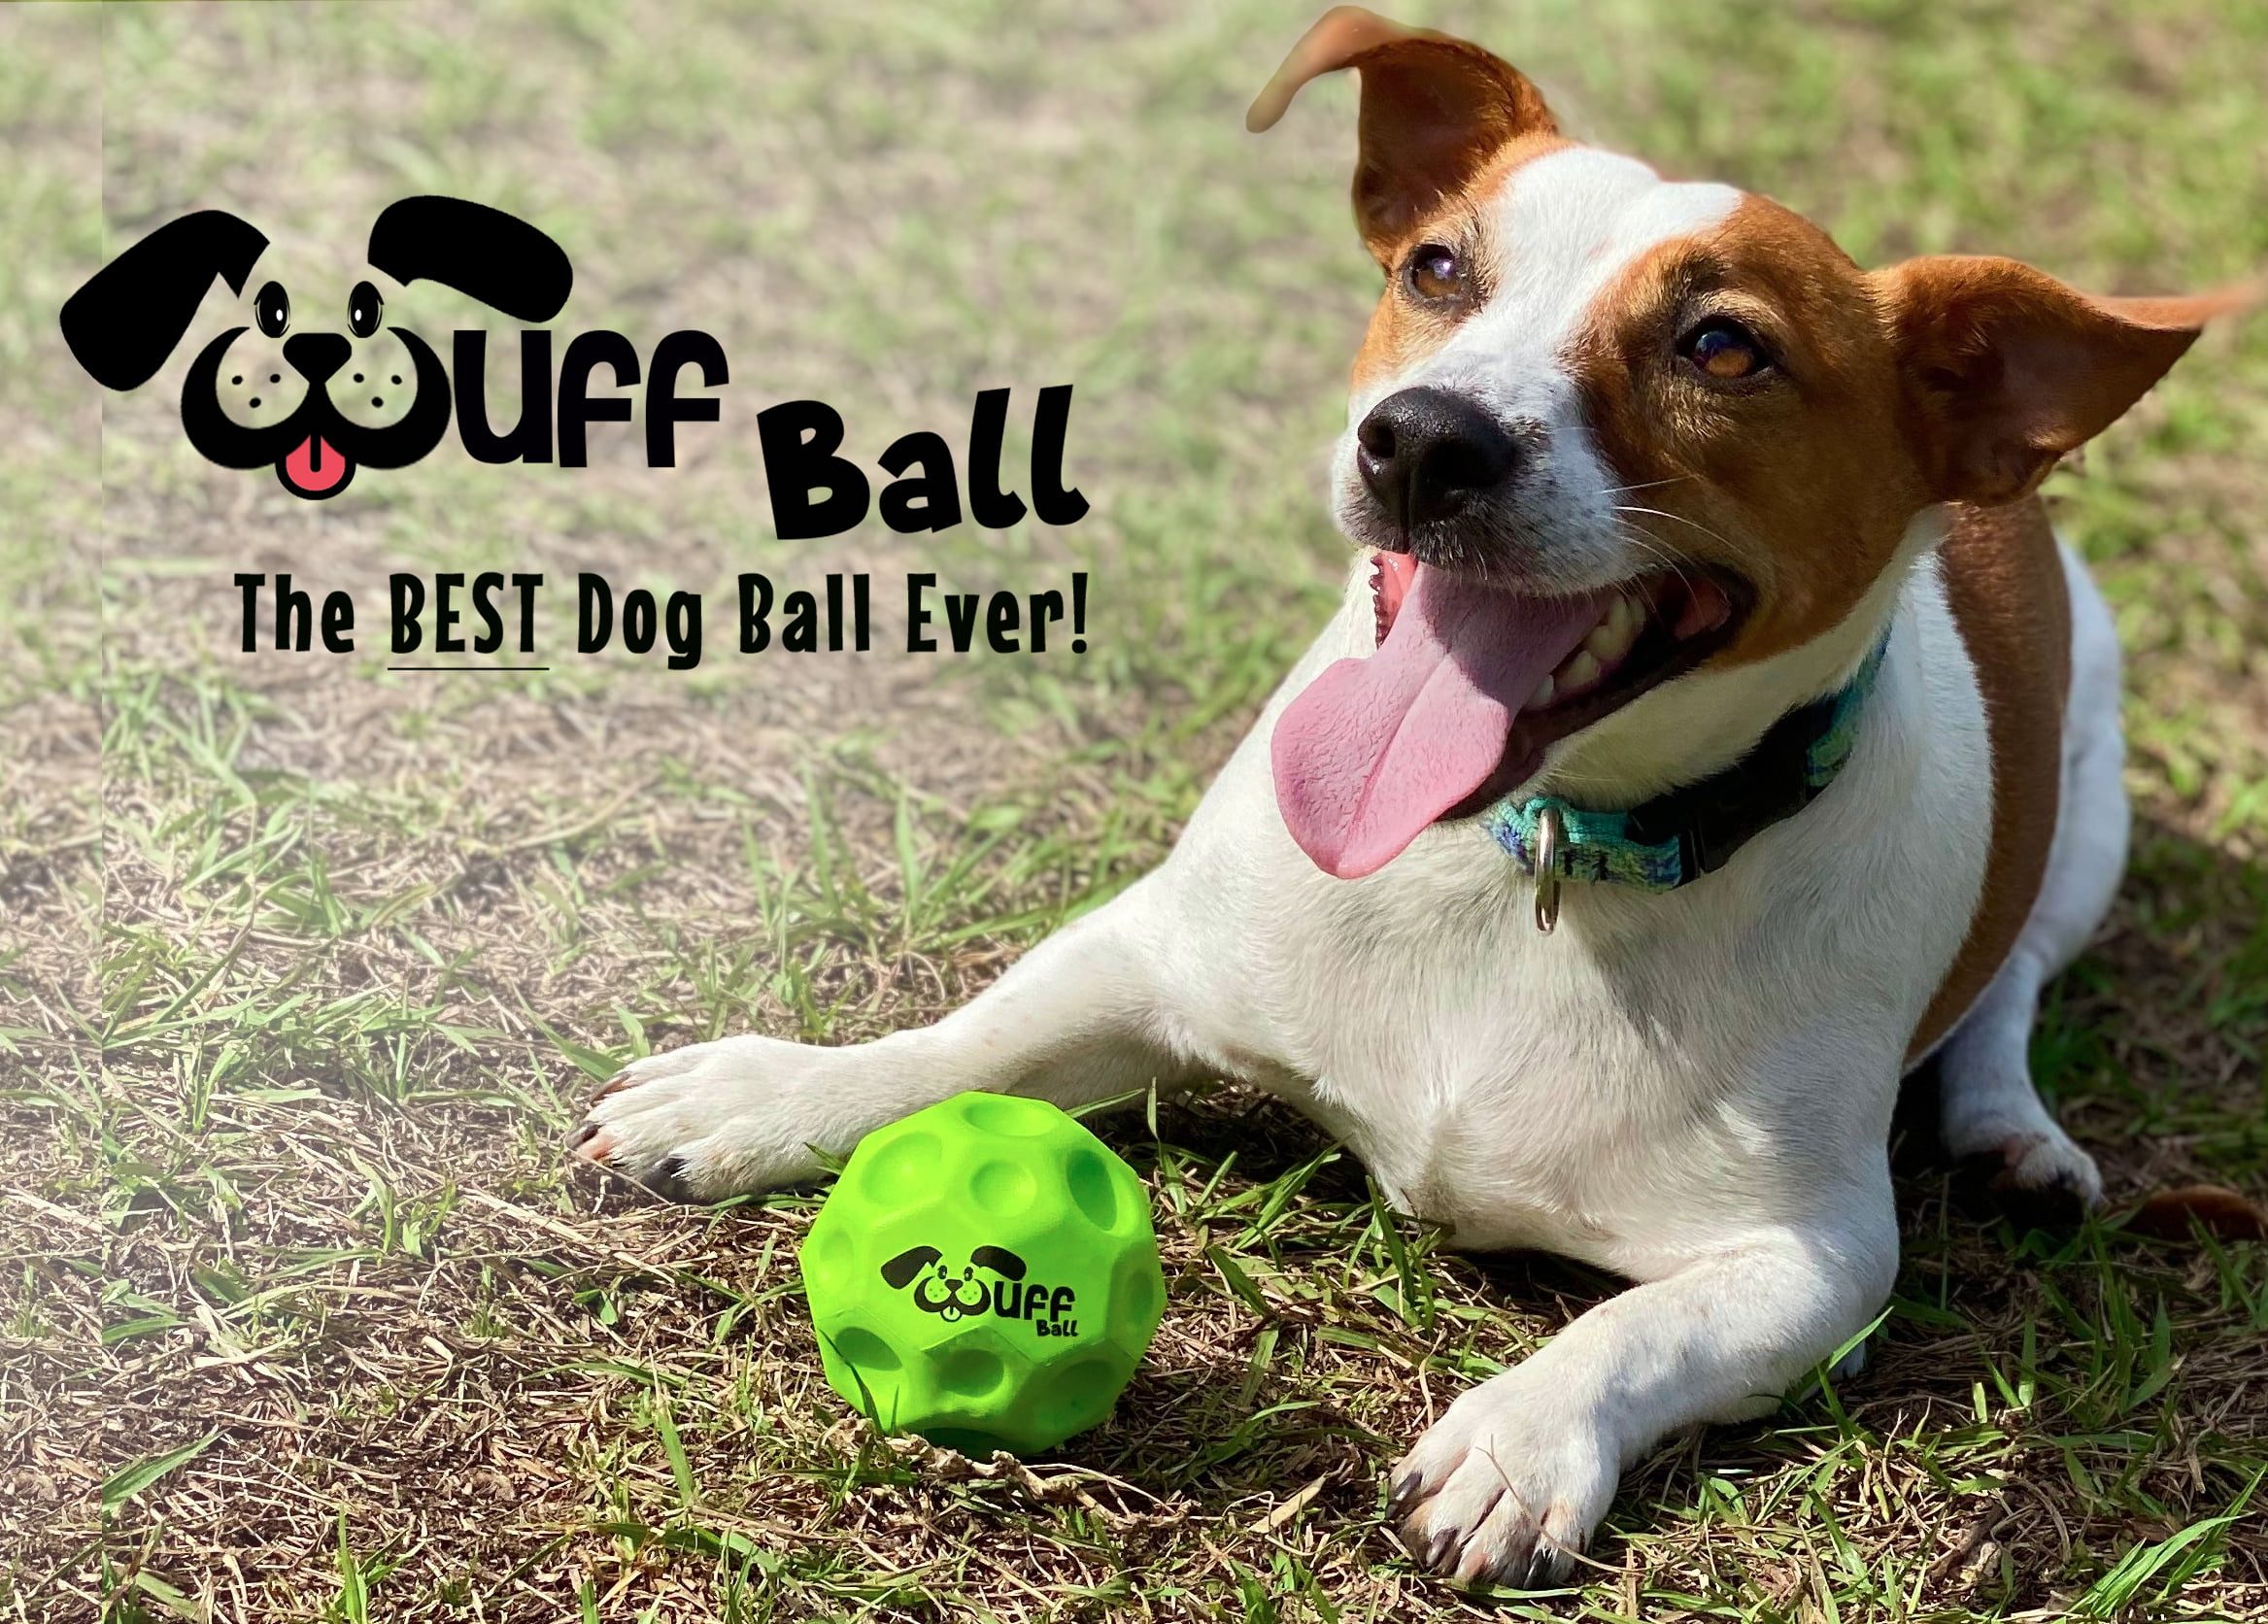 Wuff Ball, The World's Best Dog Ball, Now Available